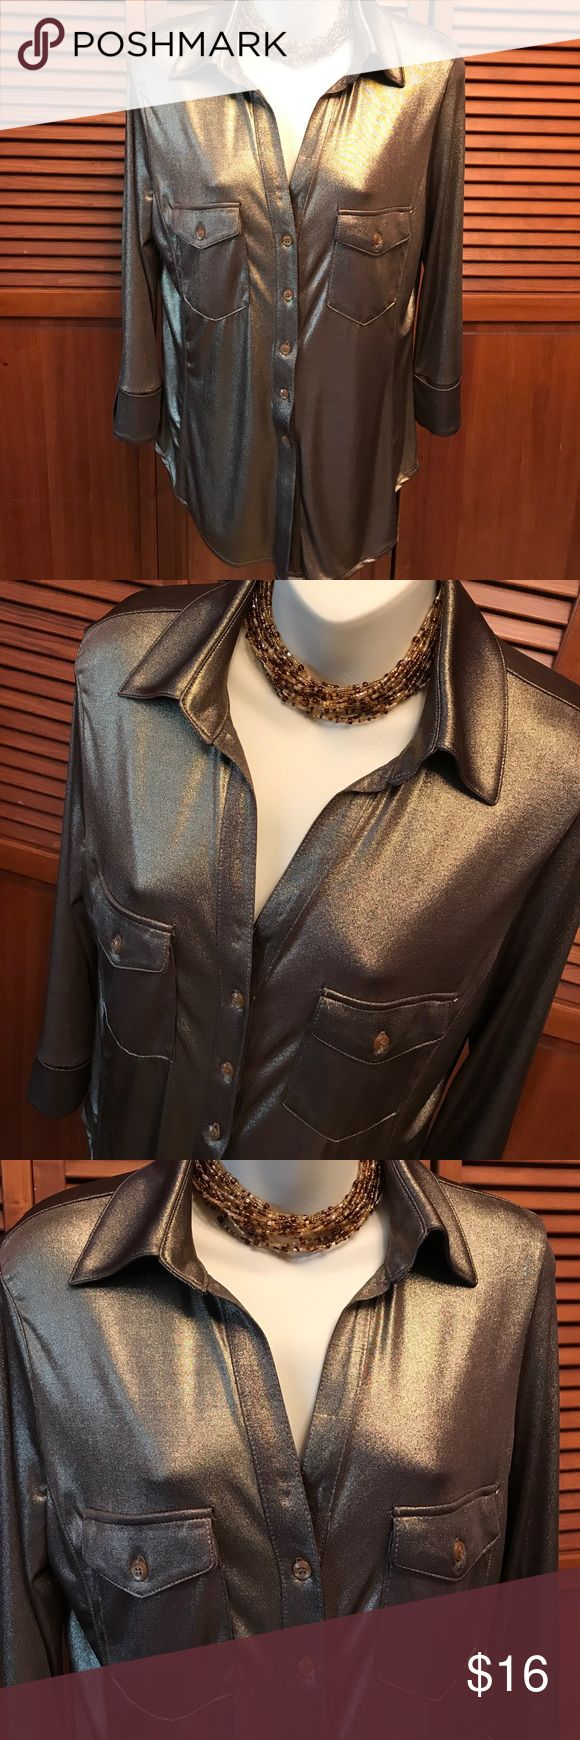 INC. International Concepts Bronze Metallic Blouse Slinky and fabulous! Gorgeous bronze metallic top goes easily from rock concert to fancy dining. Dress it up or dress it down! INC International Concepts Tops Blouses